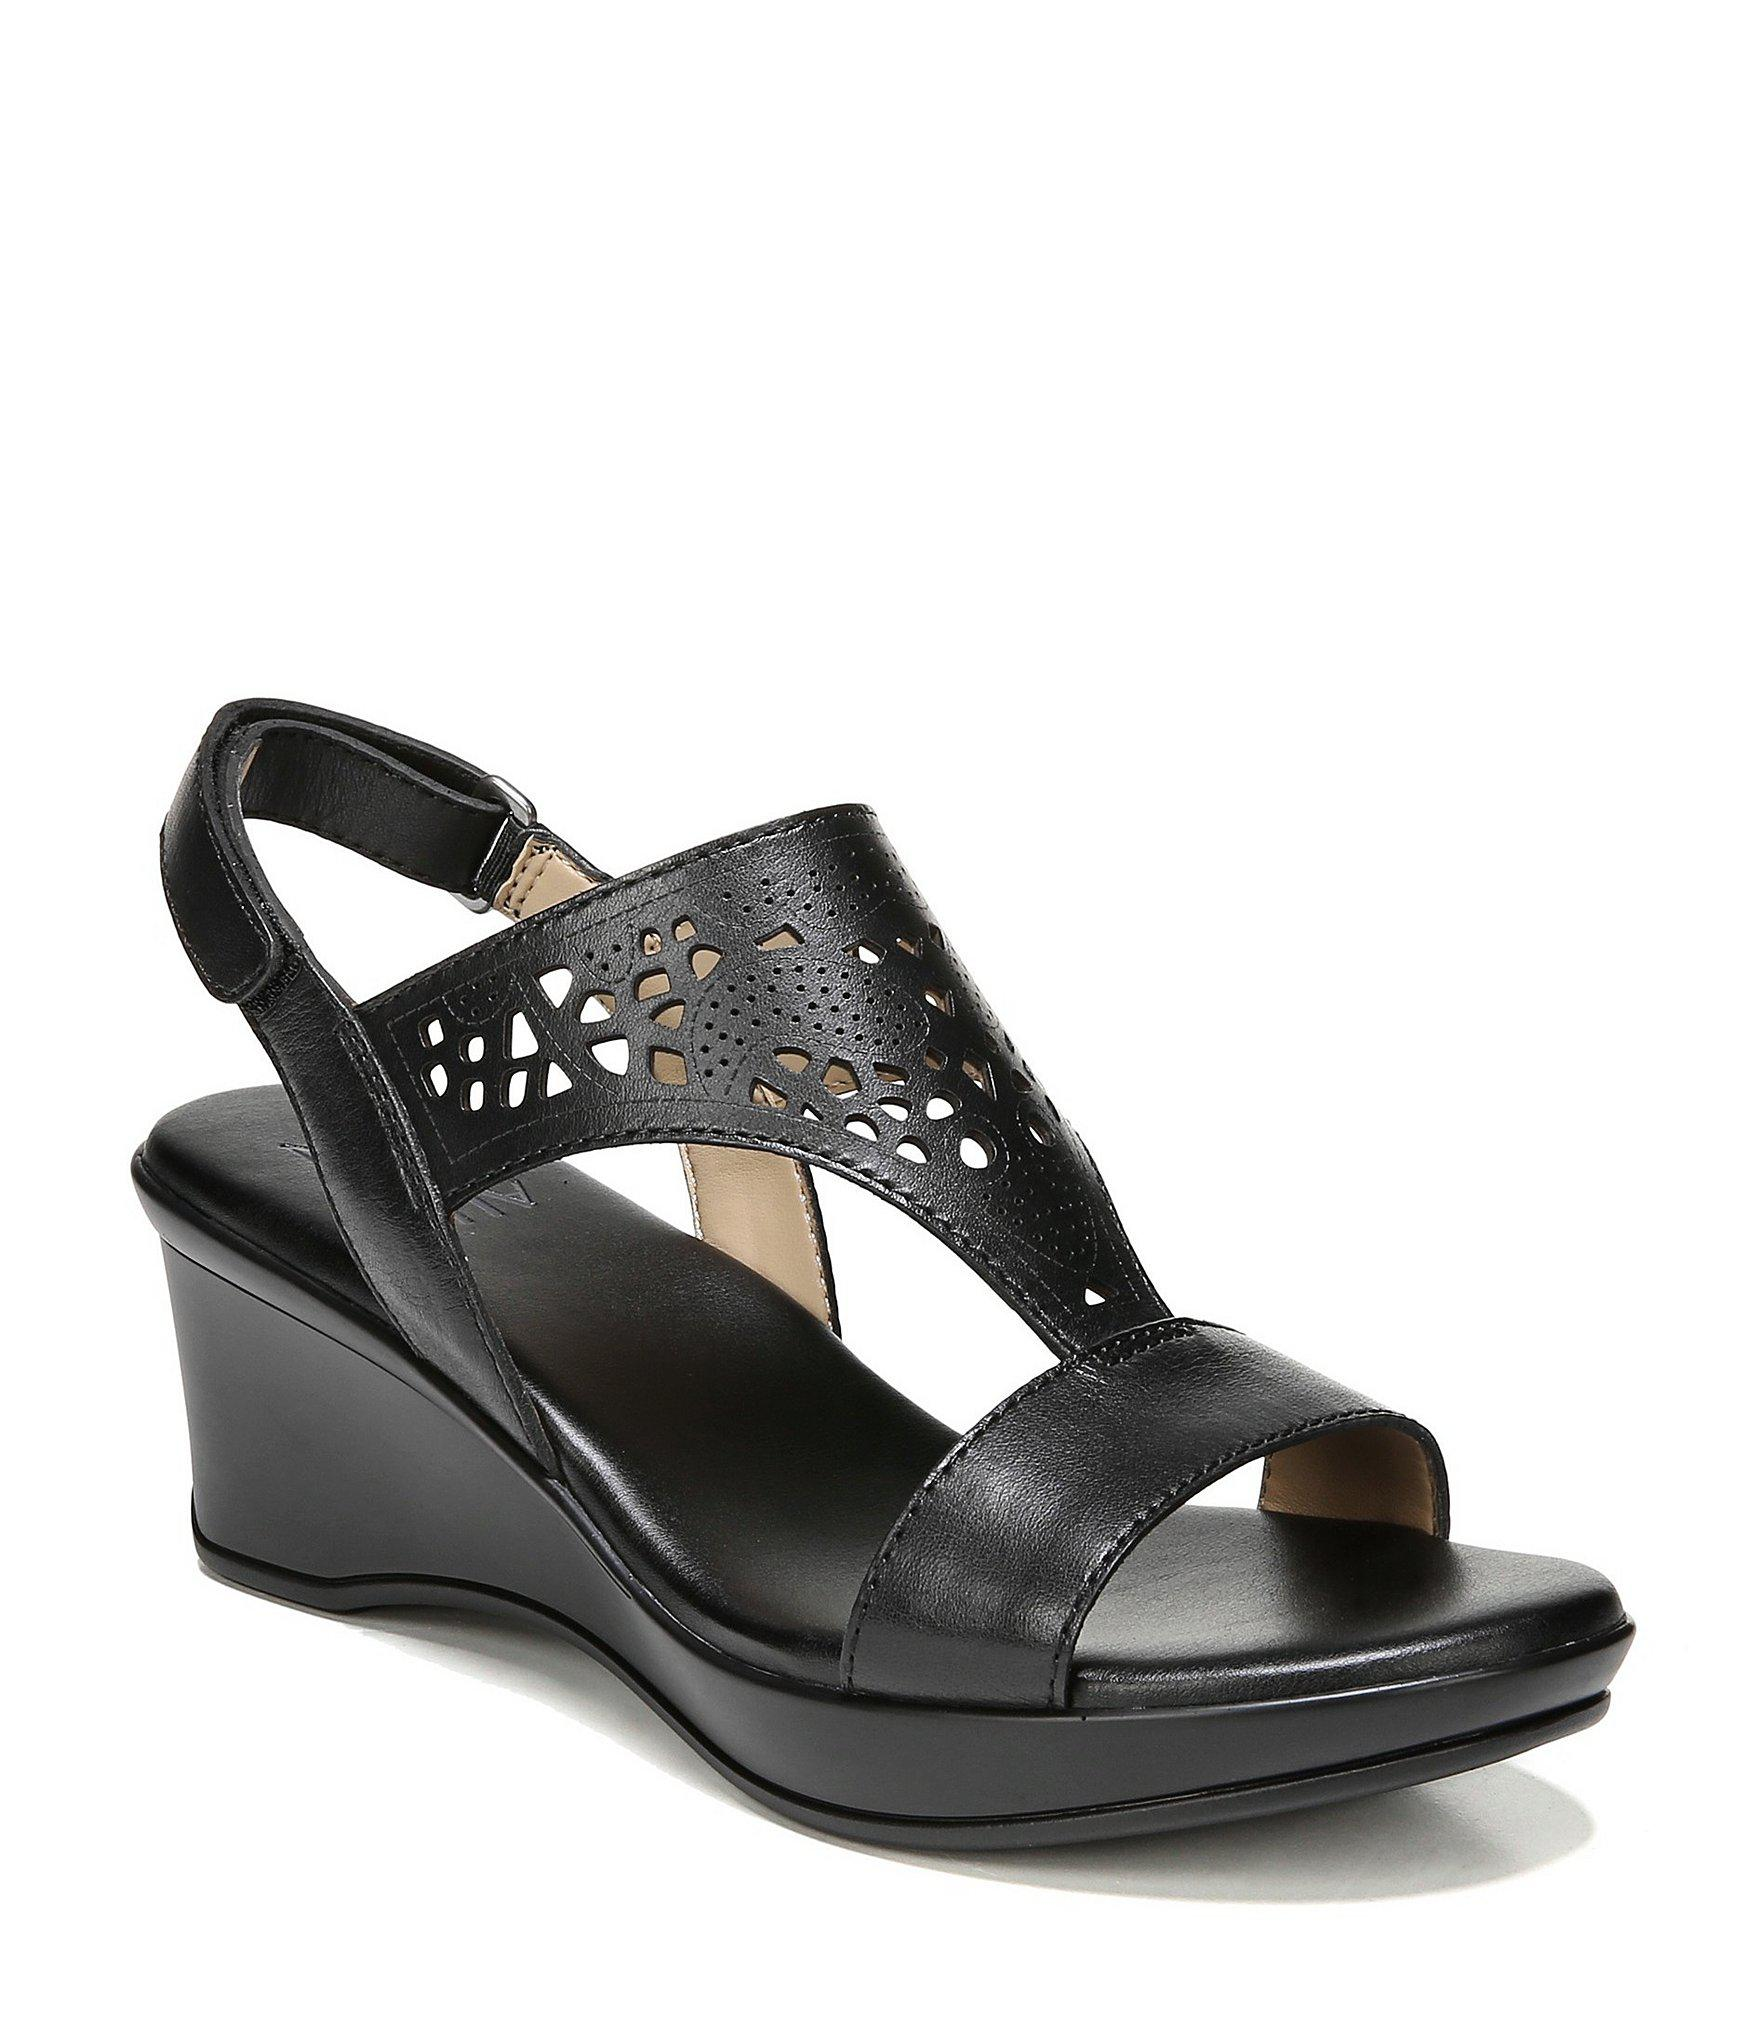 50dc81c669f Lyst - Naturalizer Veda Wedge Sandals in Black - Save 17%